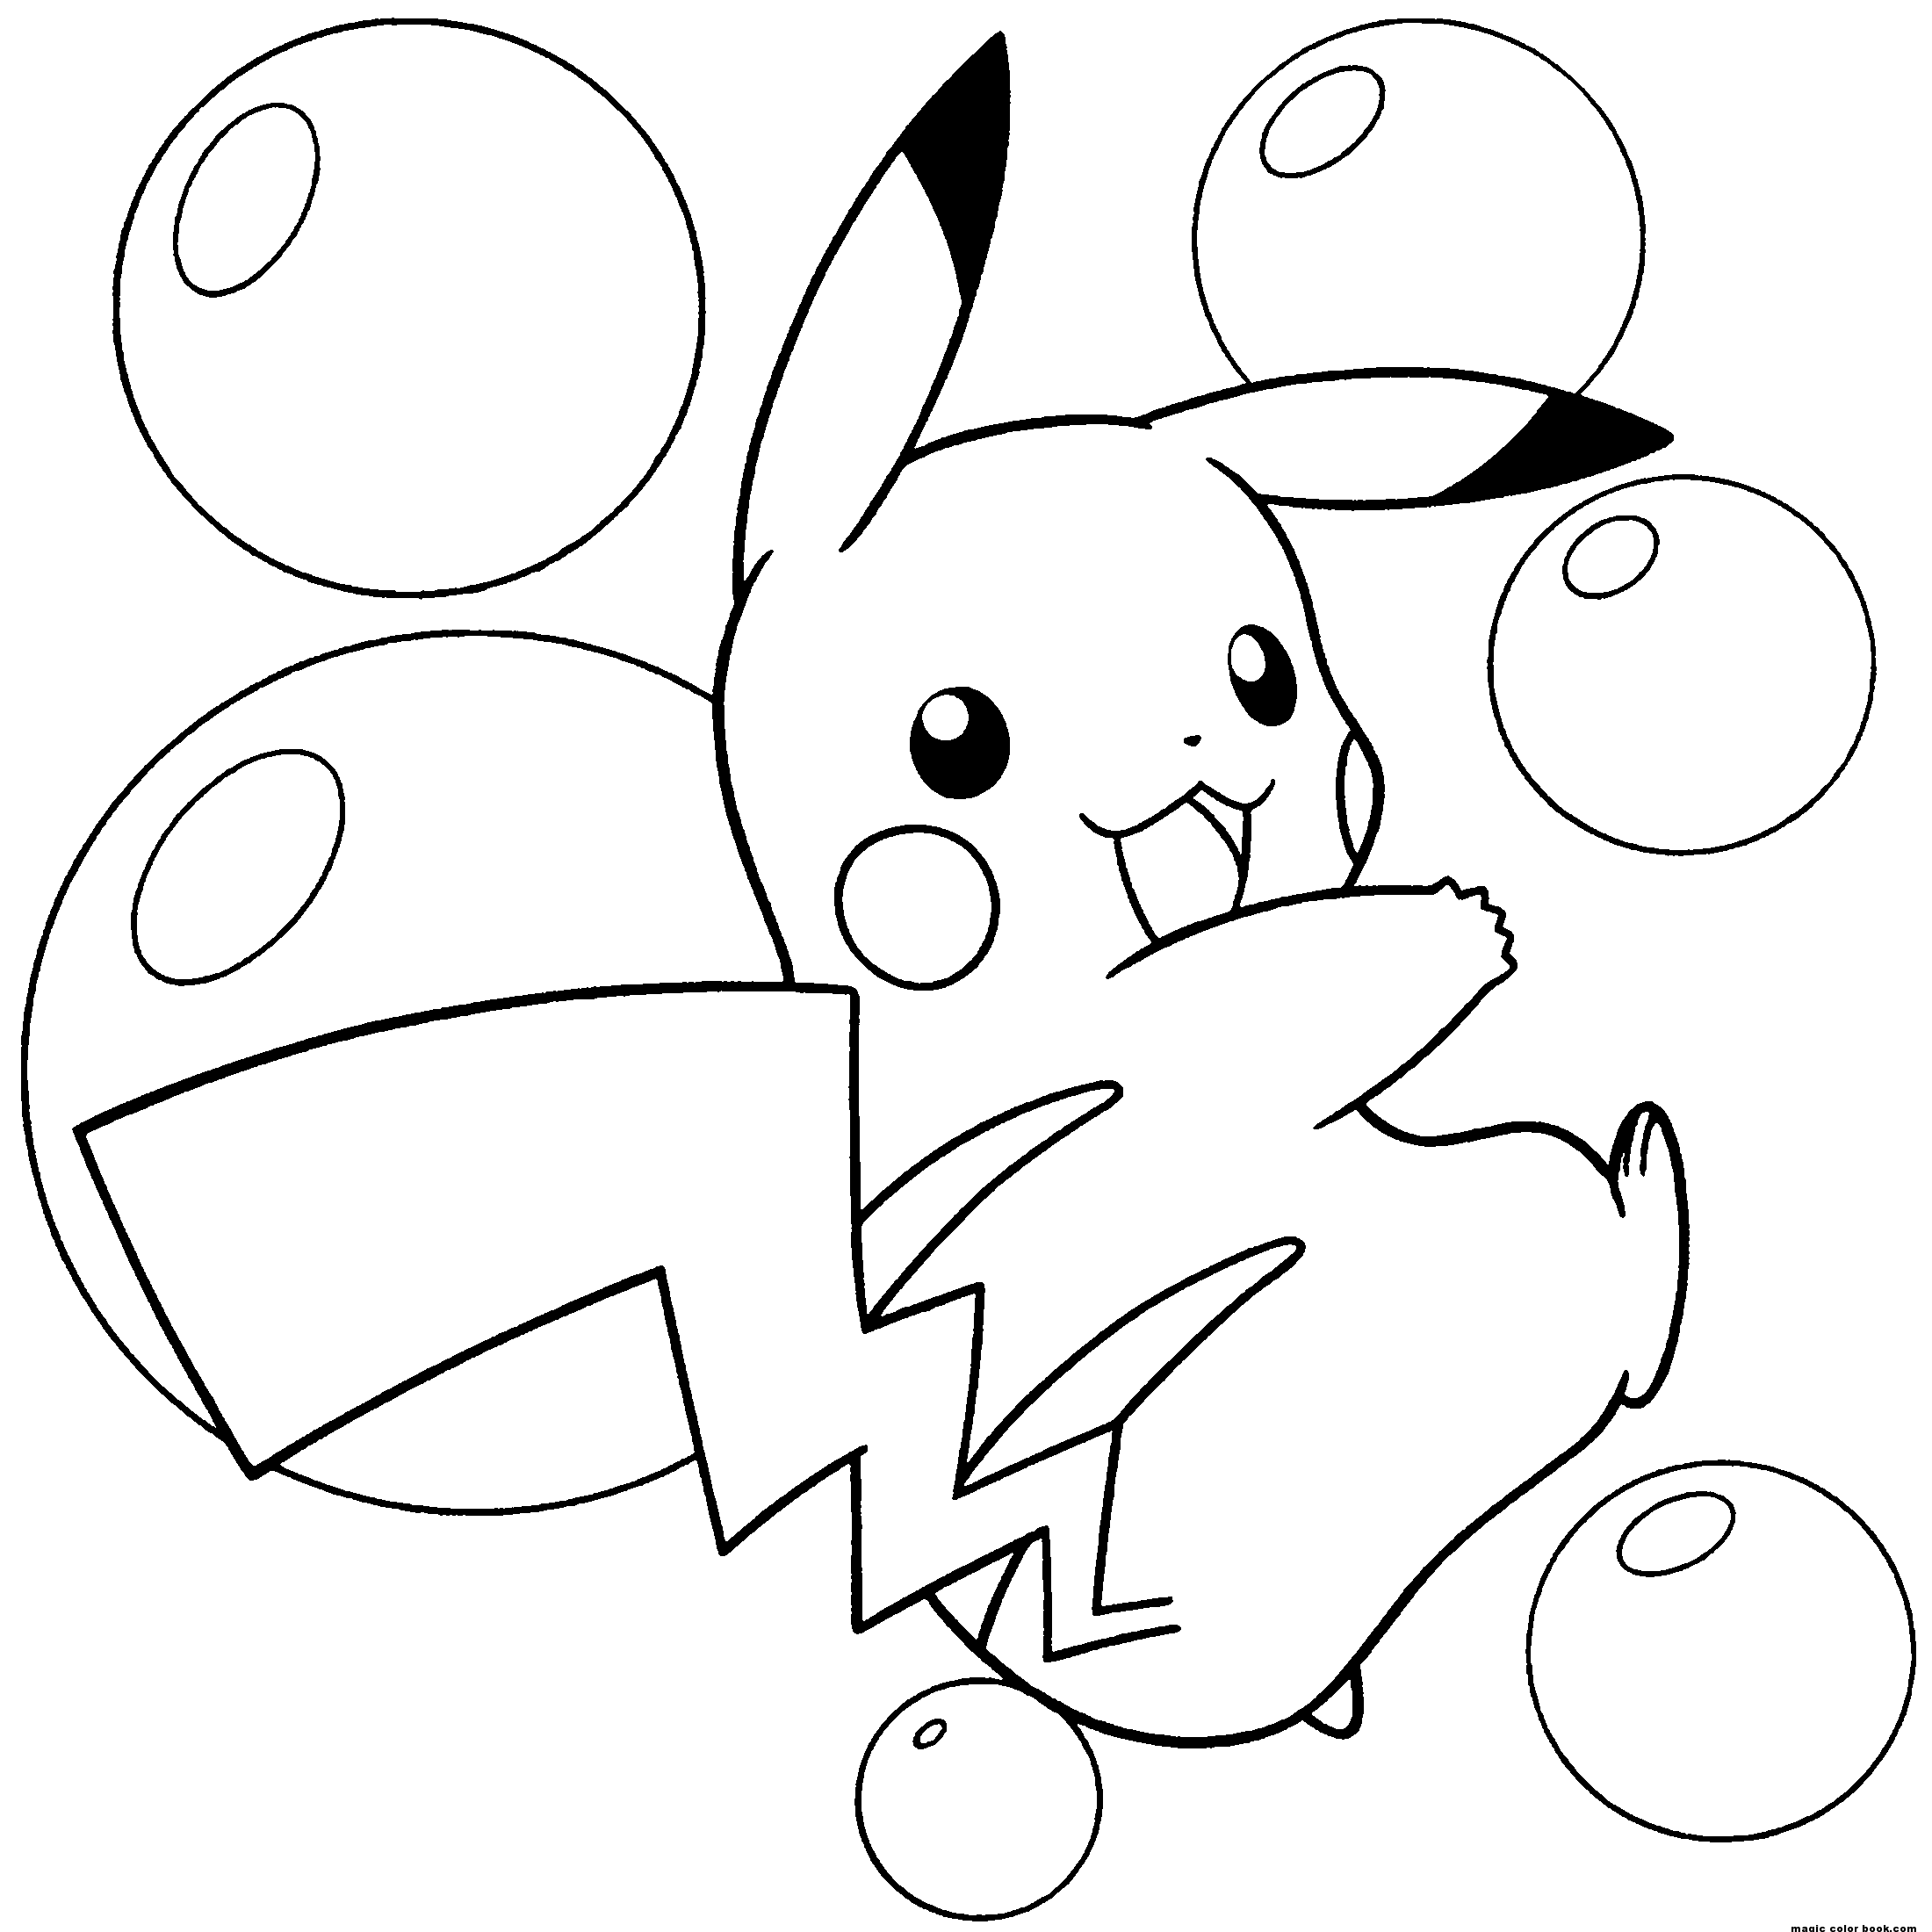 Coloring games of pokemon - Pokemon Pikachu Coloring Pages 1